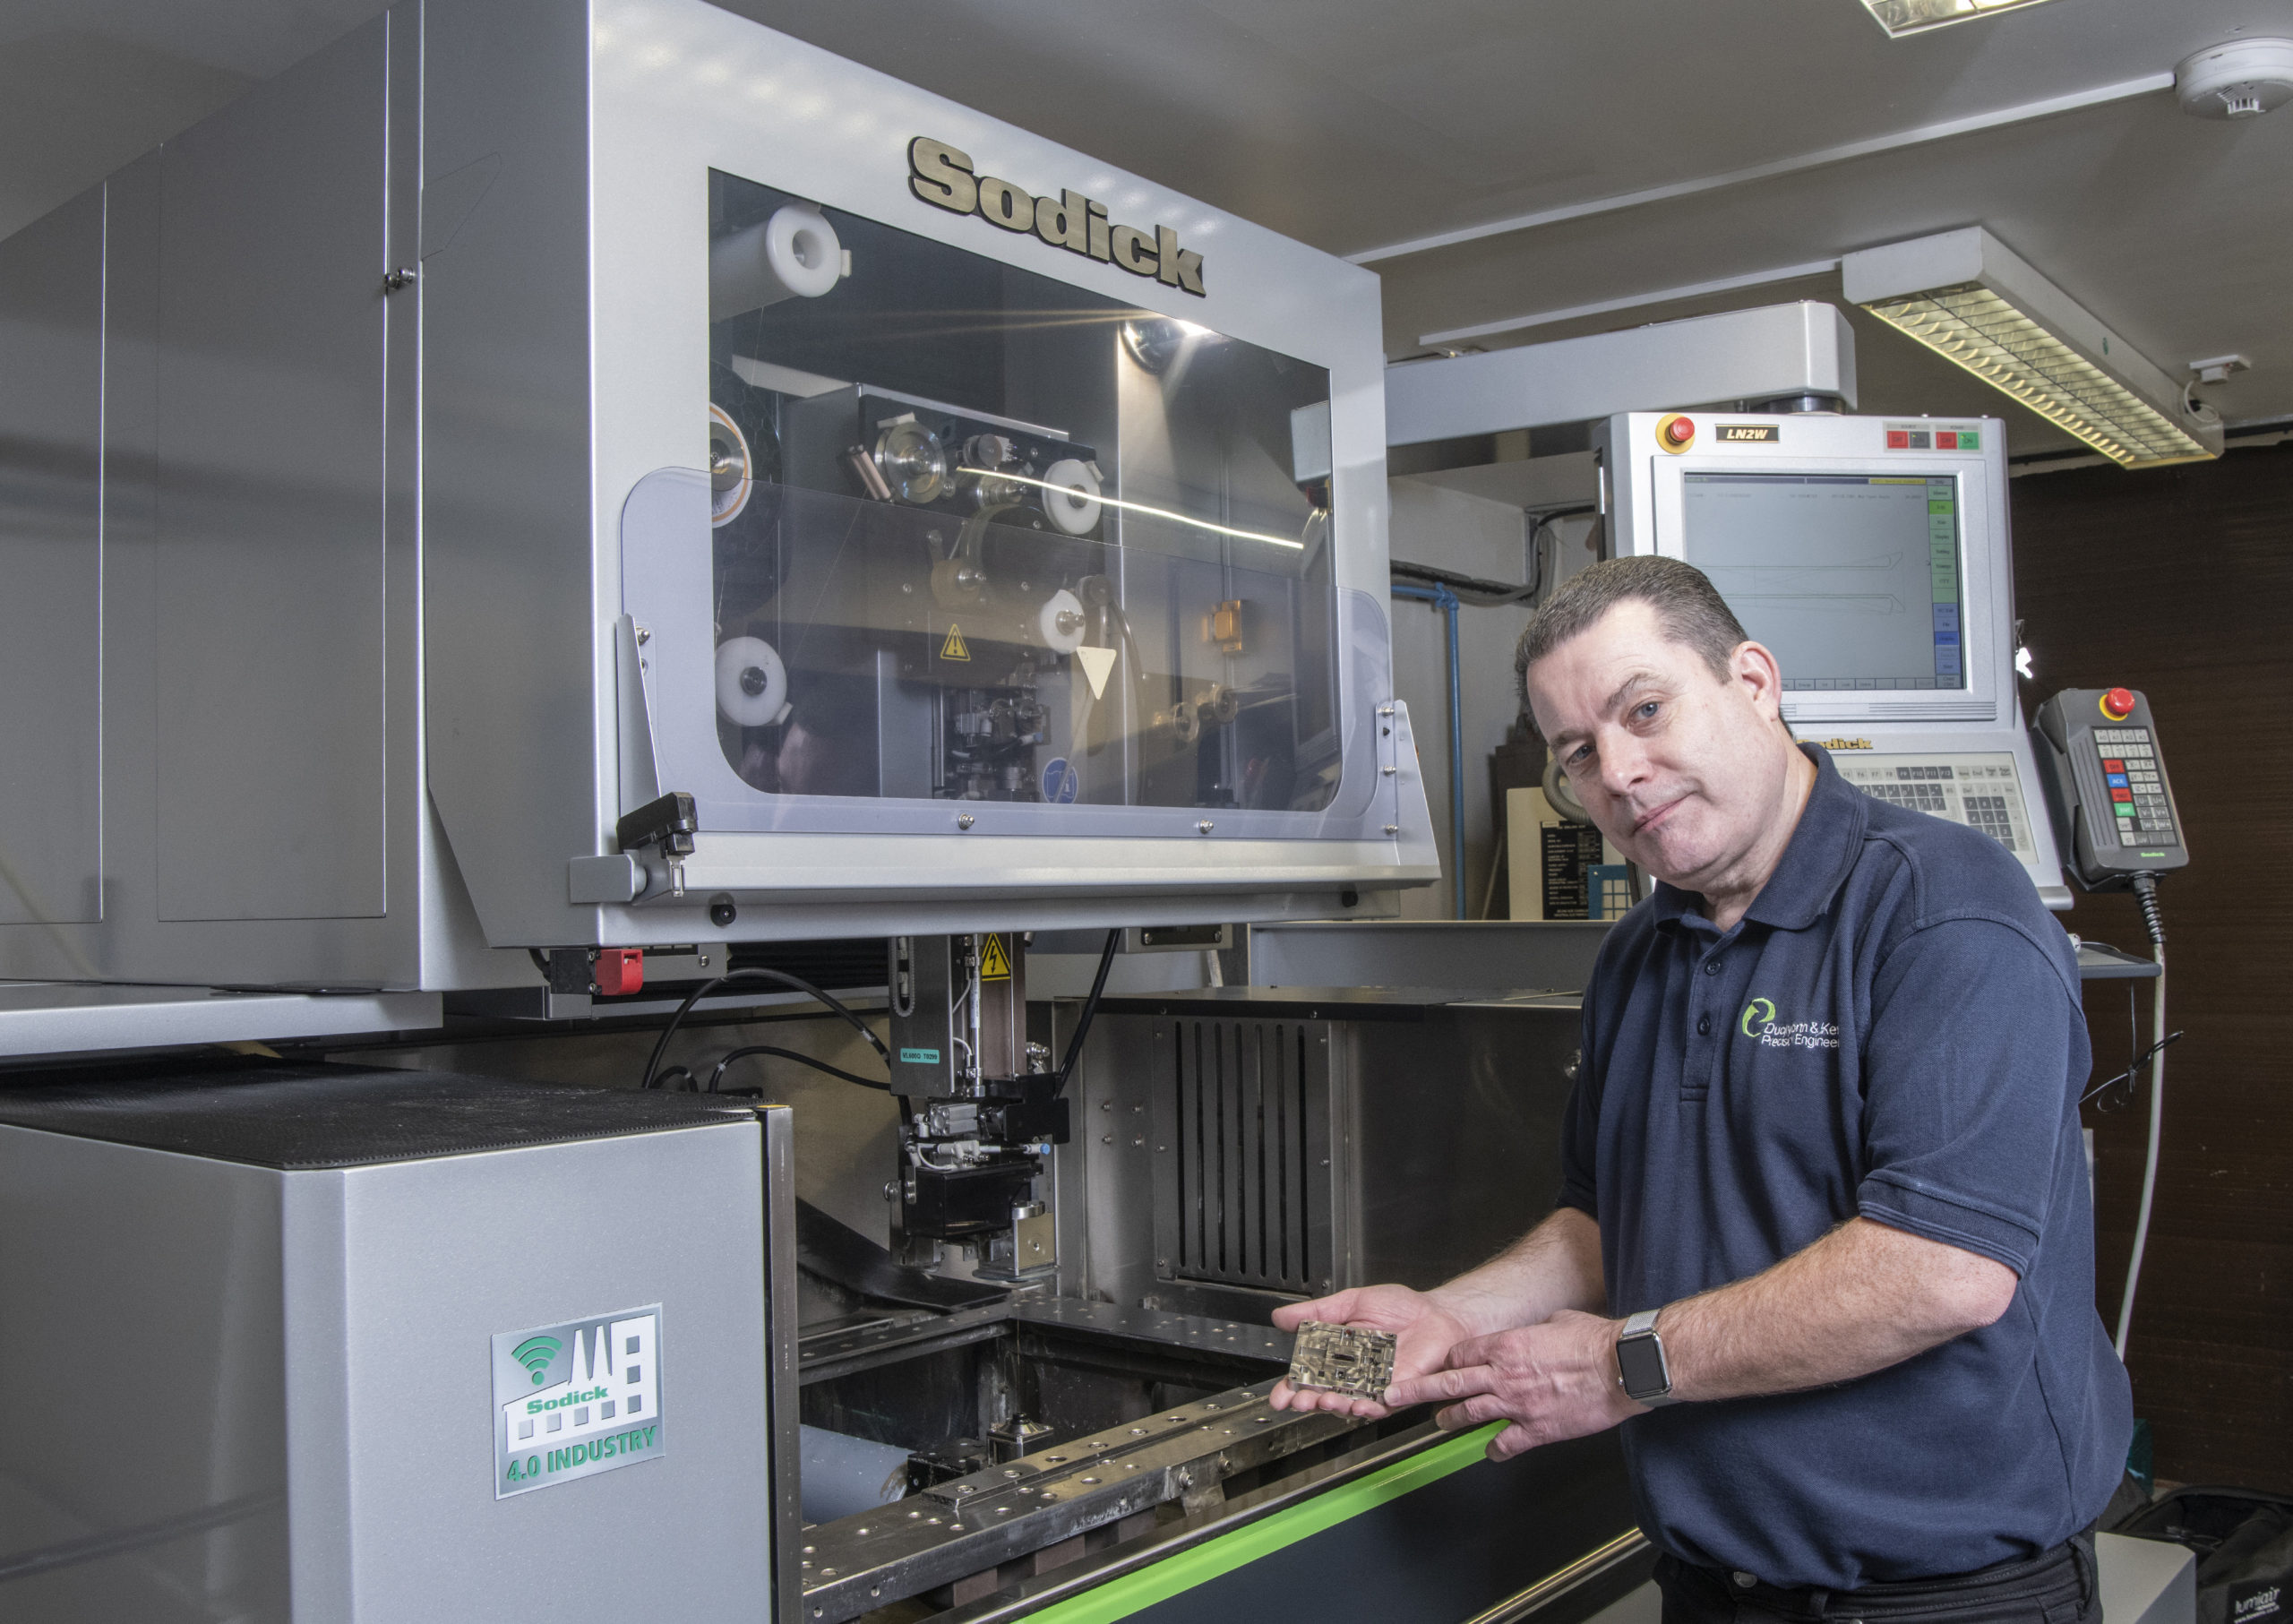 https://cdn.mtdcnc.global/cnc/wp-content/uploads/2020/05/20134549/MD-Terry-Gleeson-with-Sodick-technology-installed-at-Duckworth-Kent-Reading-ltd-scaled.jpg